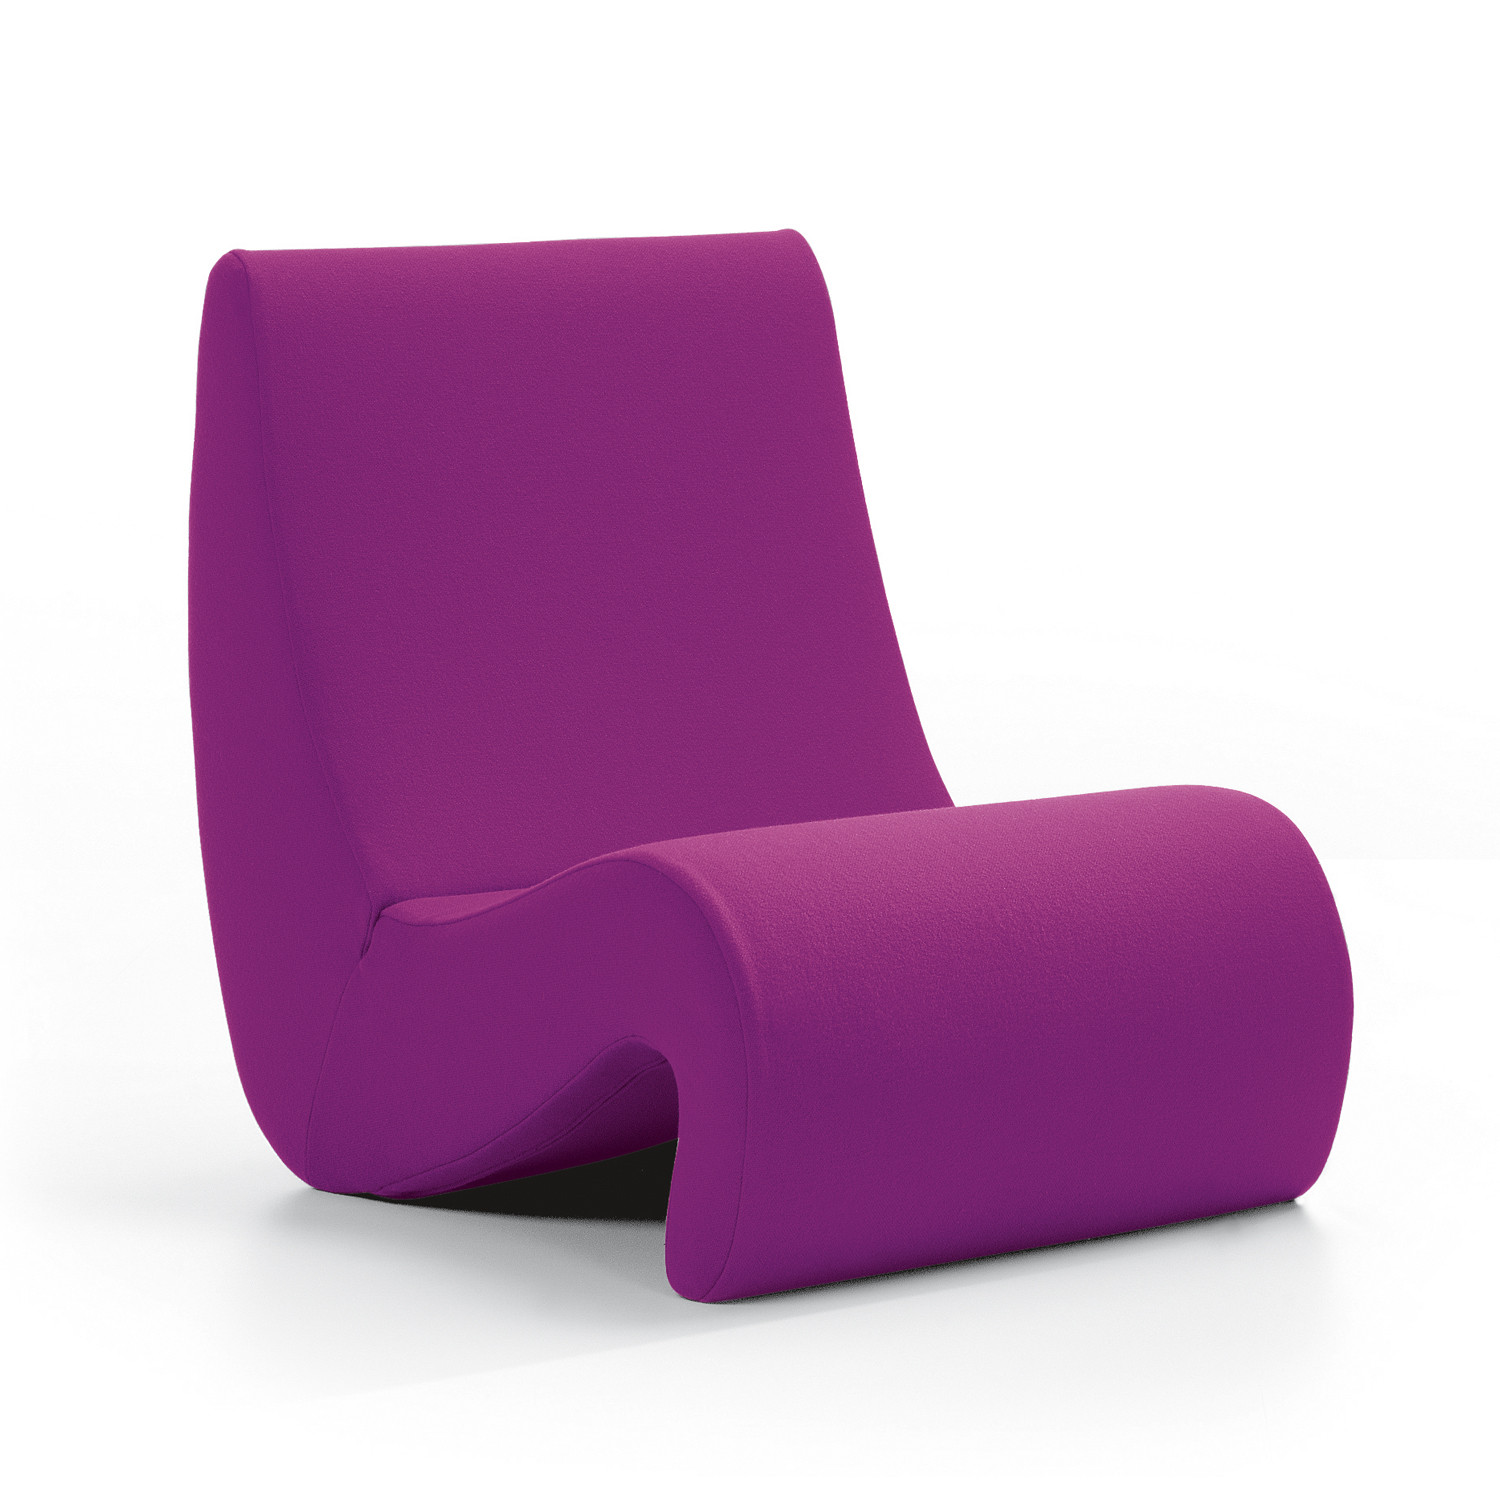 Amoebe Chair in Purple